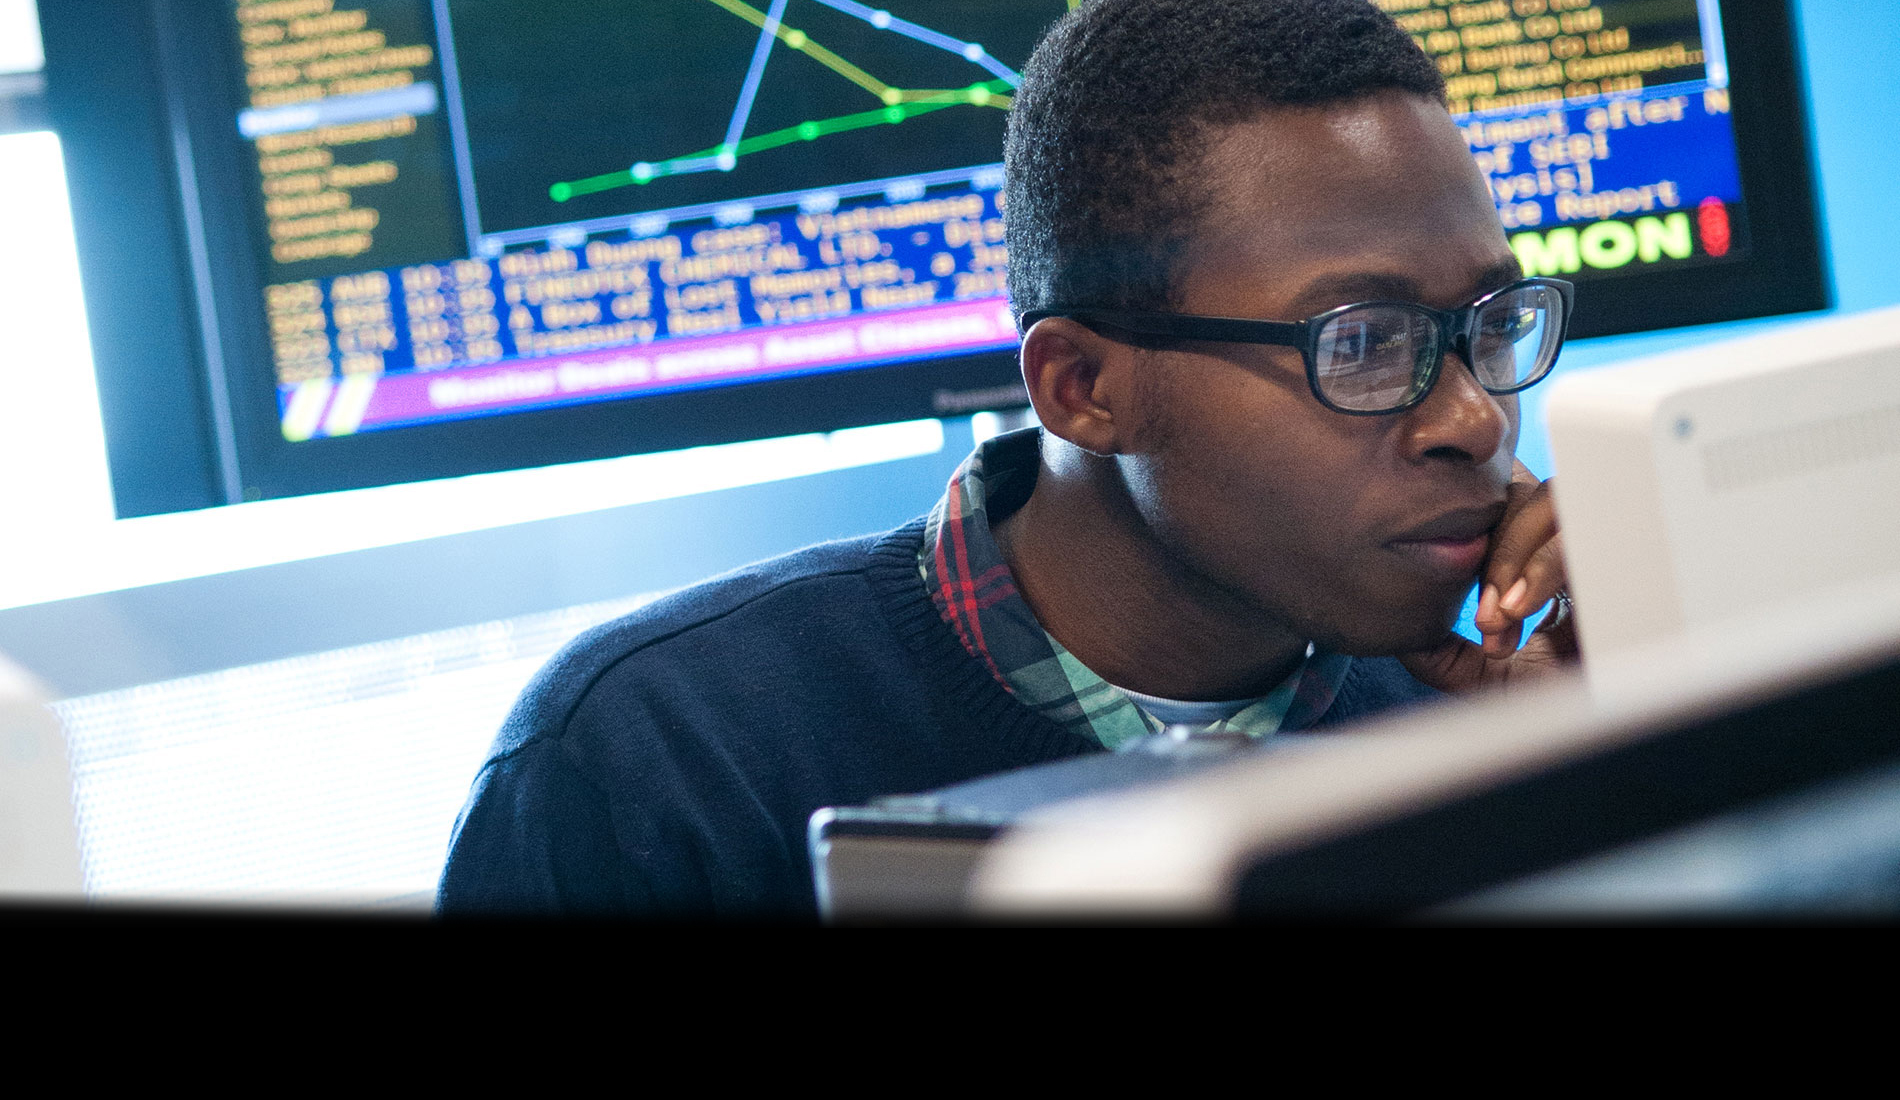 undergraduate business studies The bachelor's in business administration program prepares graduates for a wide range of career options there's a tremendous need in the marketplace for professionals who know how to manage the resources of an organization or business in an effective manner.